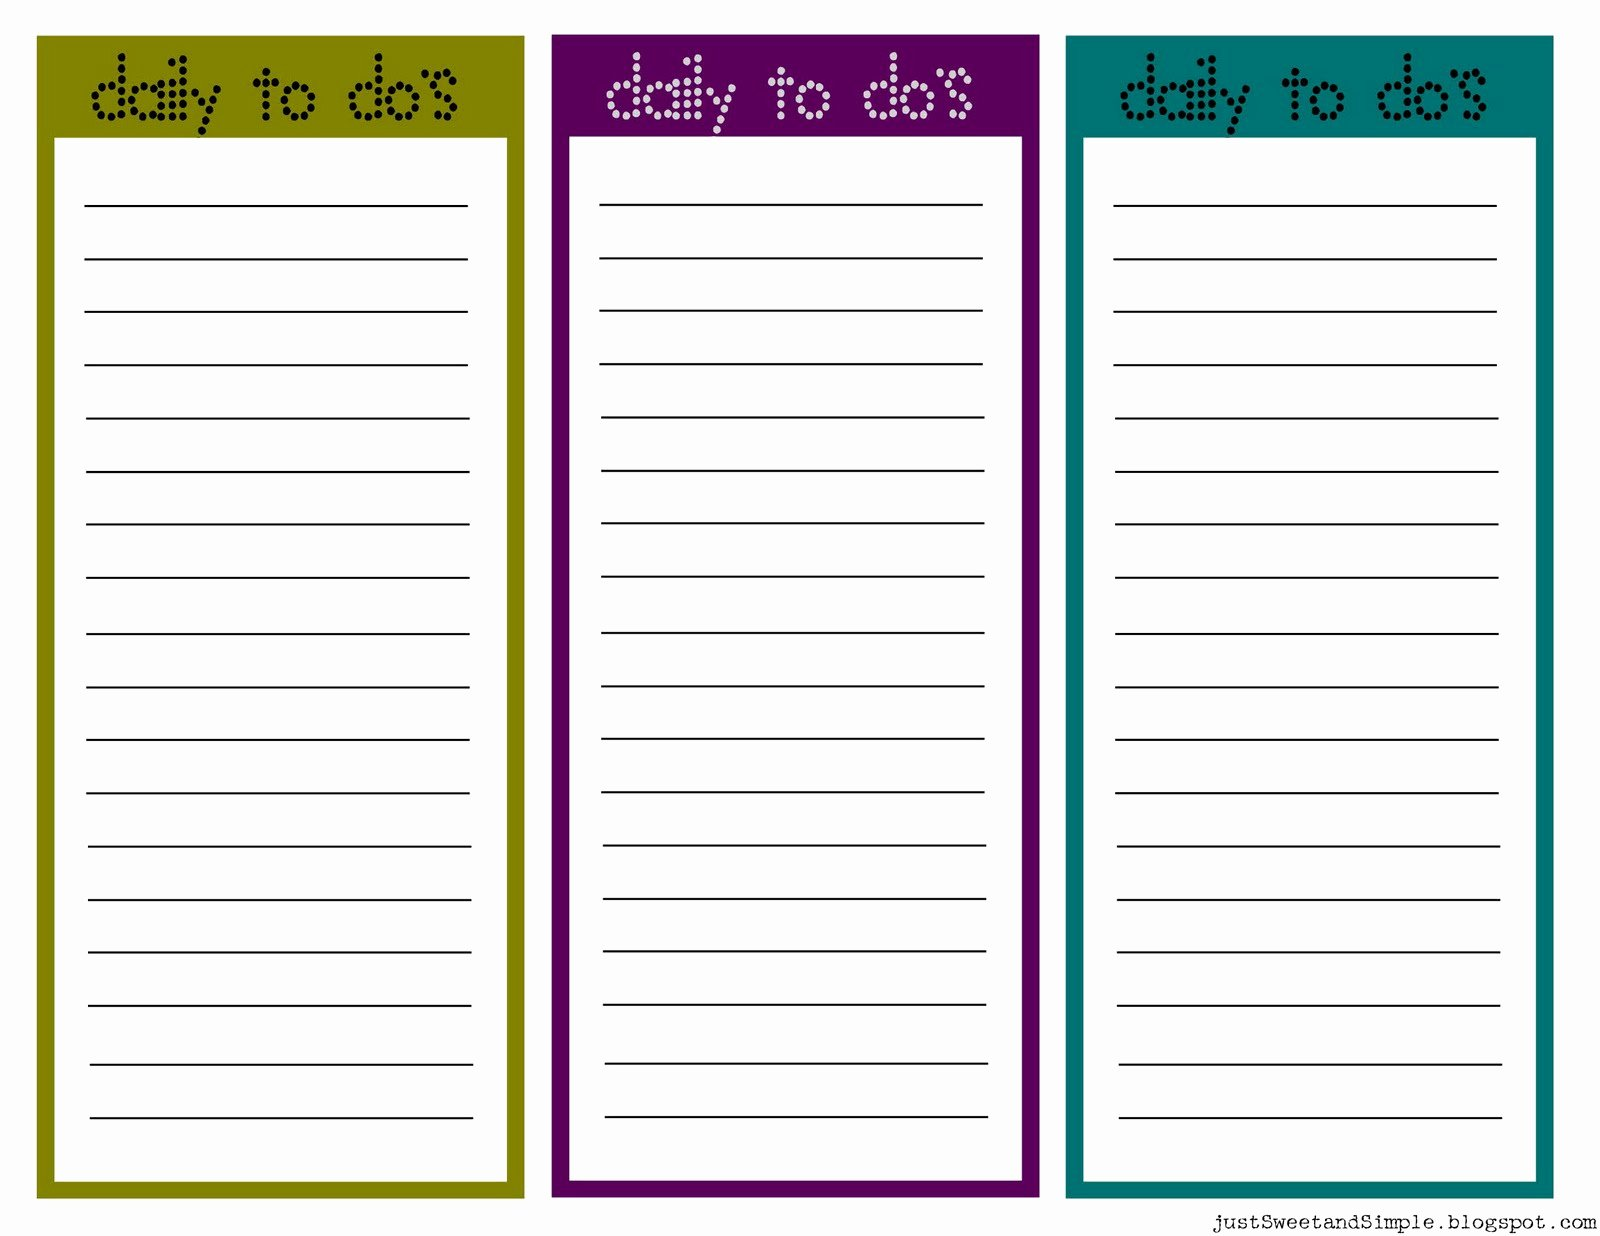 Daily to Do List Template Beautiful Just Sweet and Simple Printable Little Daily to Do List S